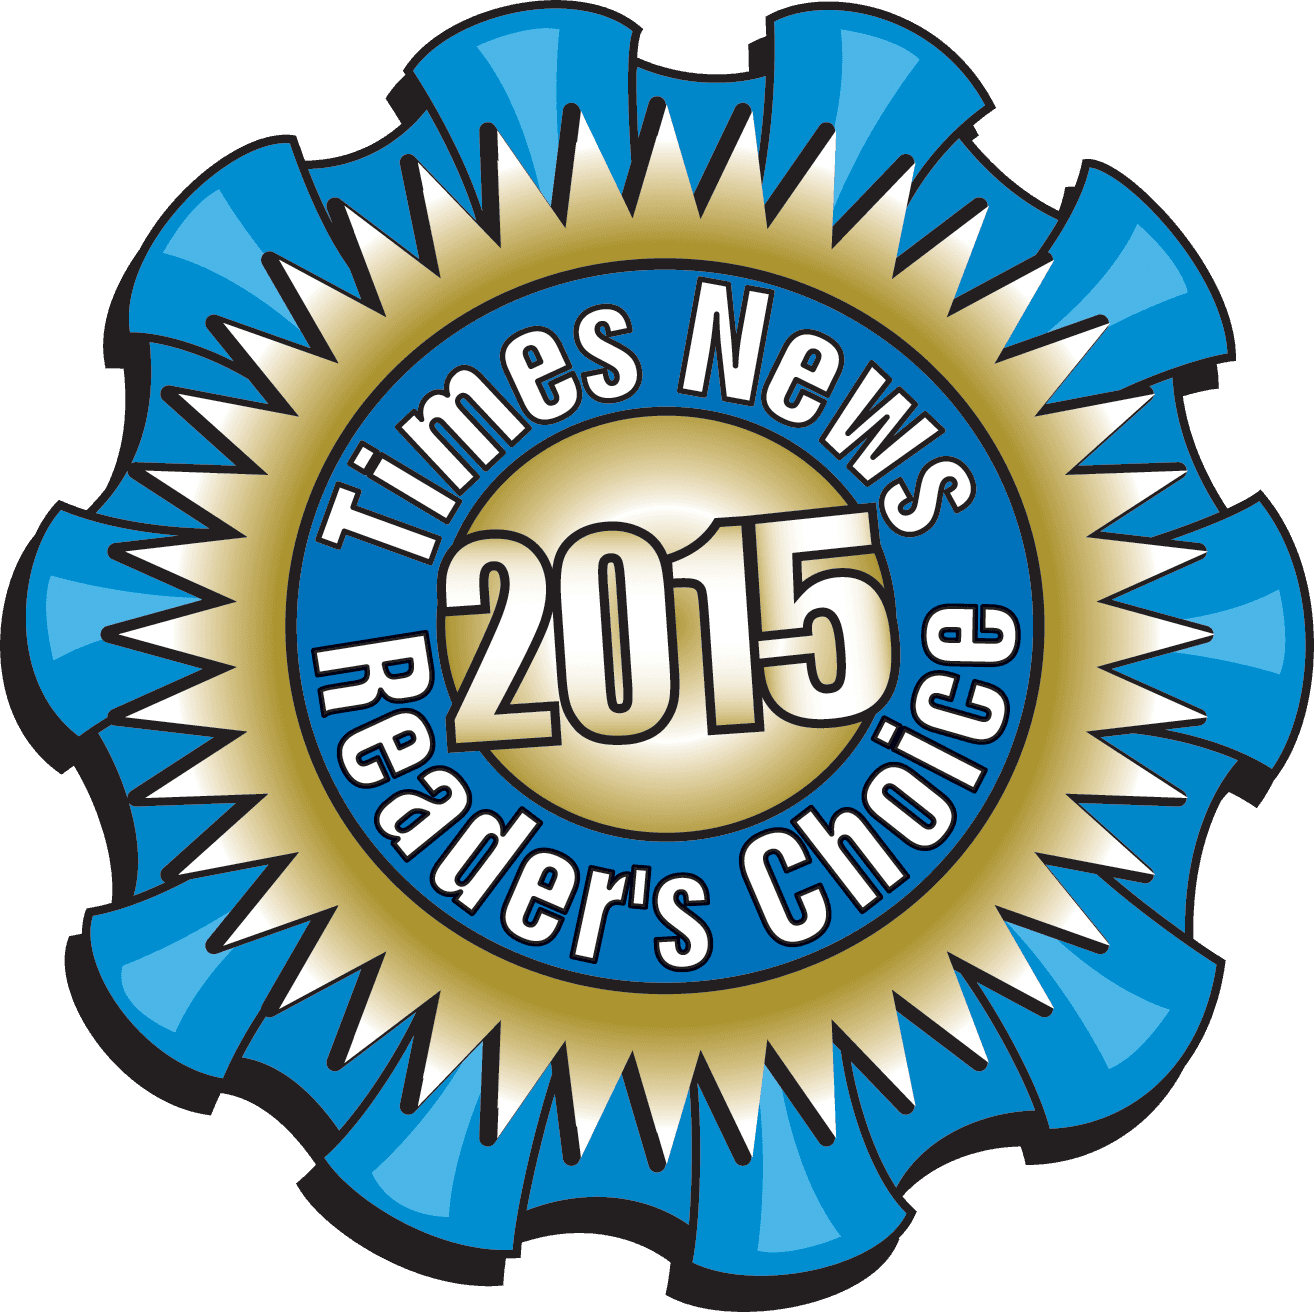 Times News Reader's Choice 2015